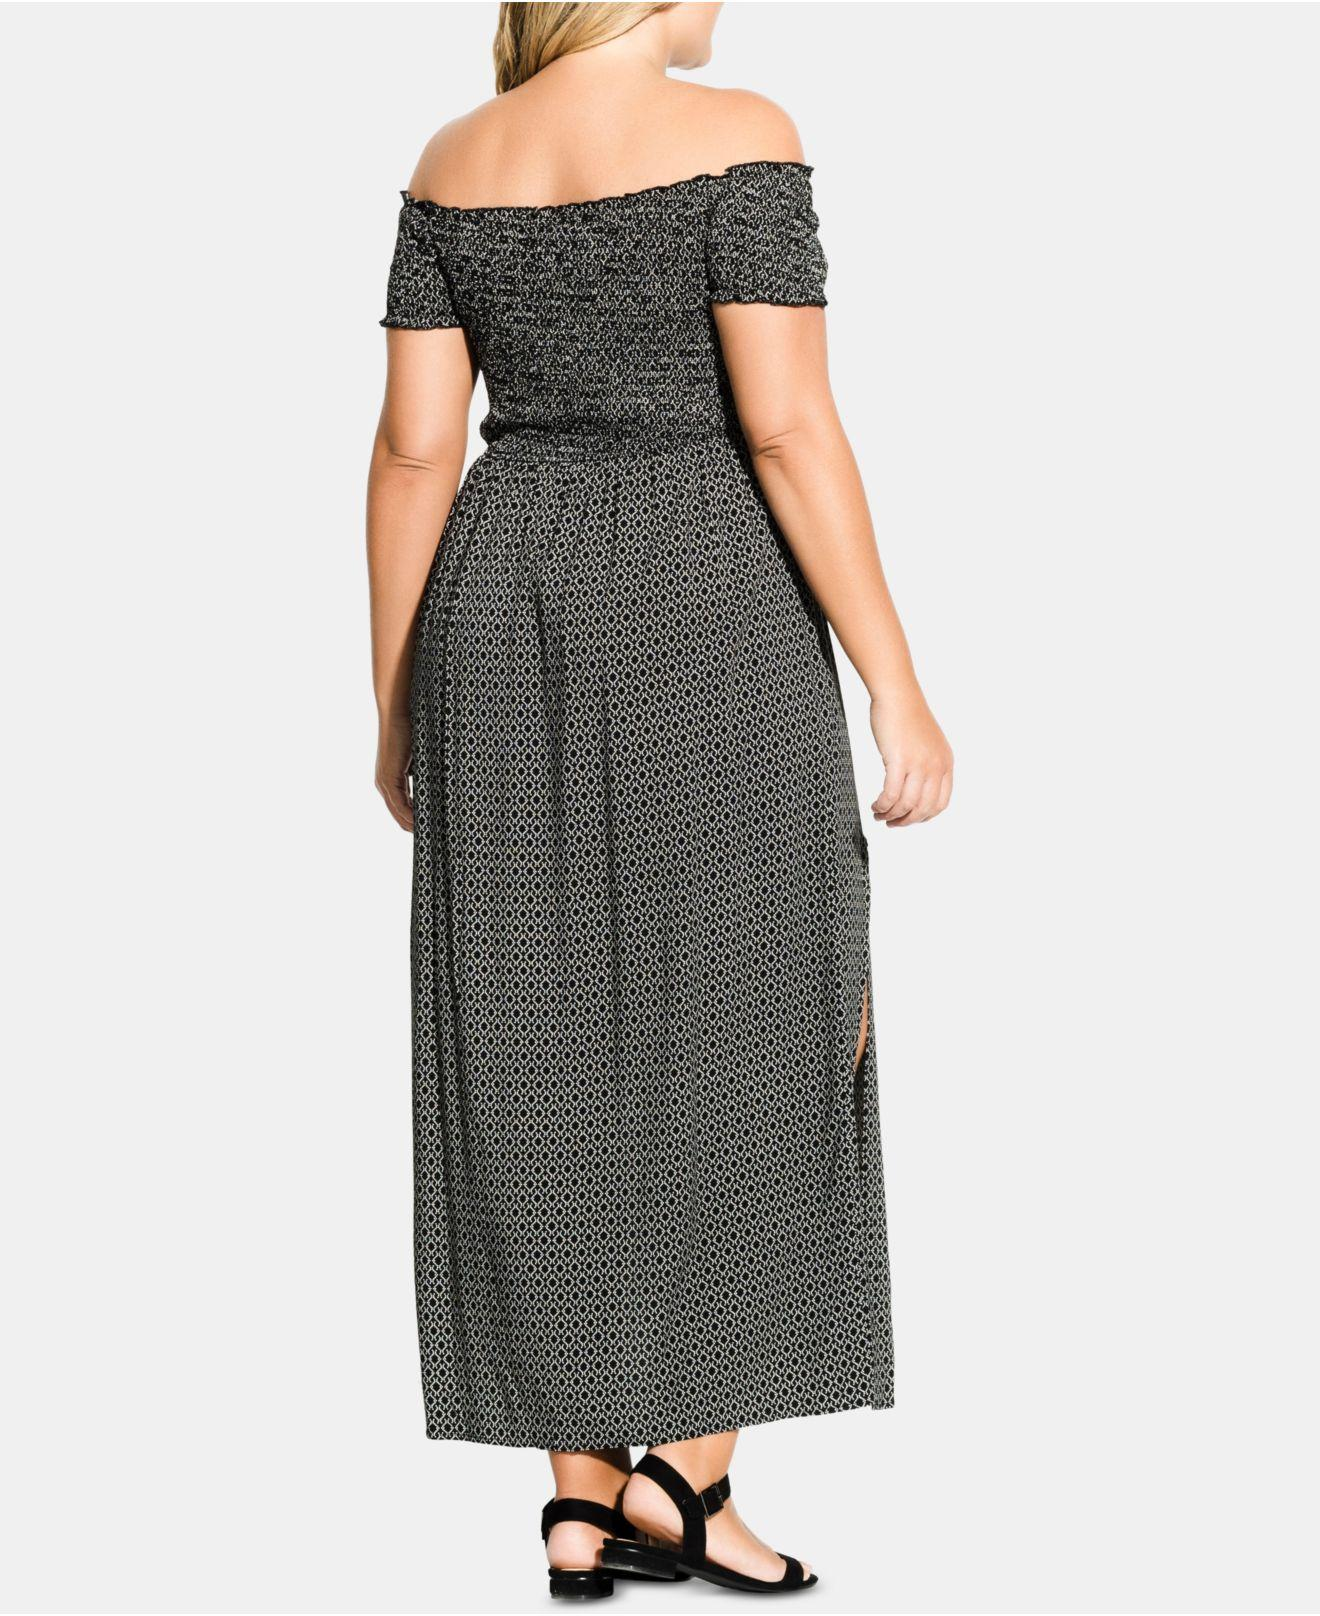 Lyst - City Chic Trendy Plus Size Off-the-shoulder Maxi Dress in Black